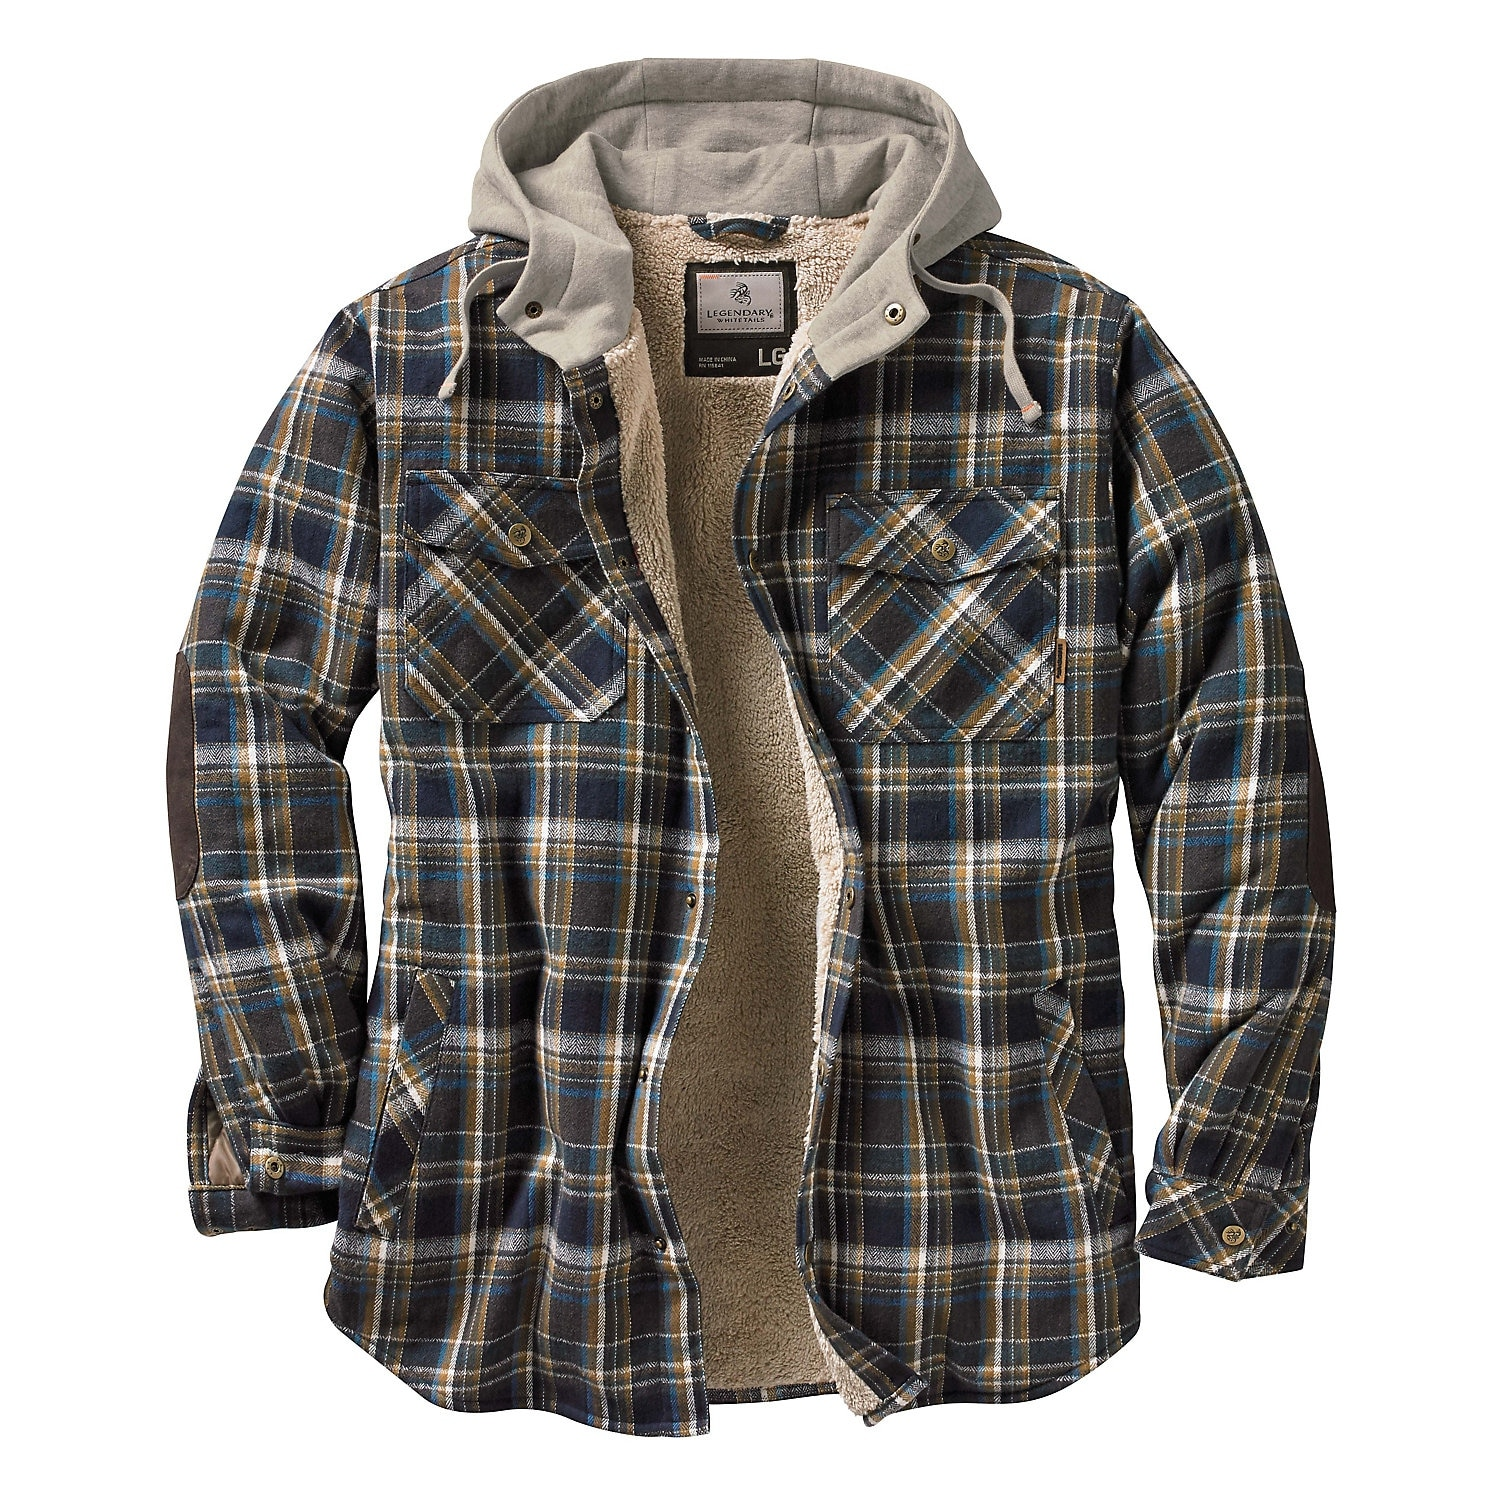 Legendary whitetails mens camp night berber lined hooded flannel legendary whitetails mens camp night berber lined hooded flannel free shipping today overstock 20077163 jeuxipadfo Images